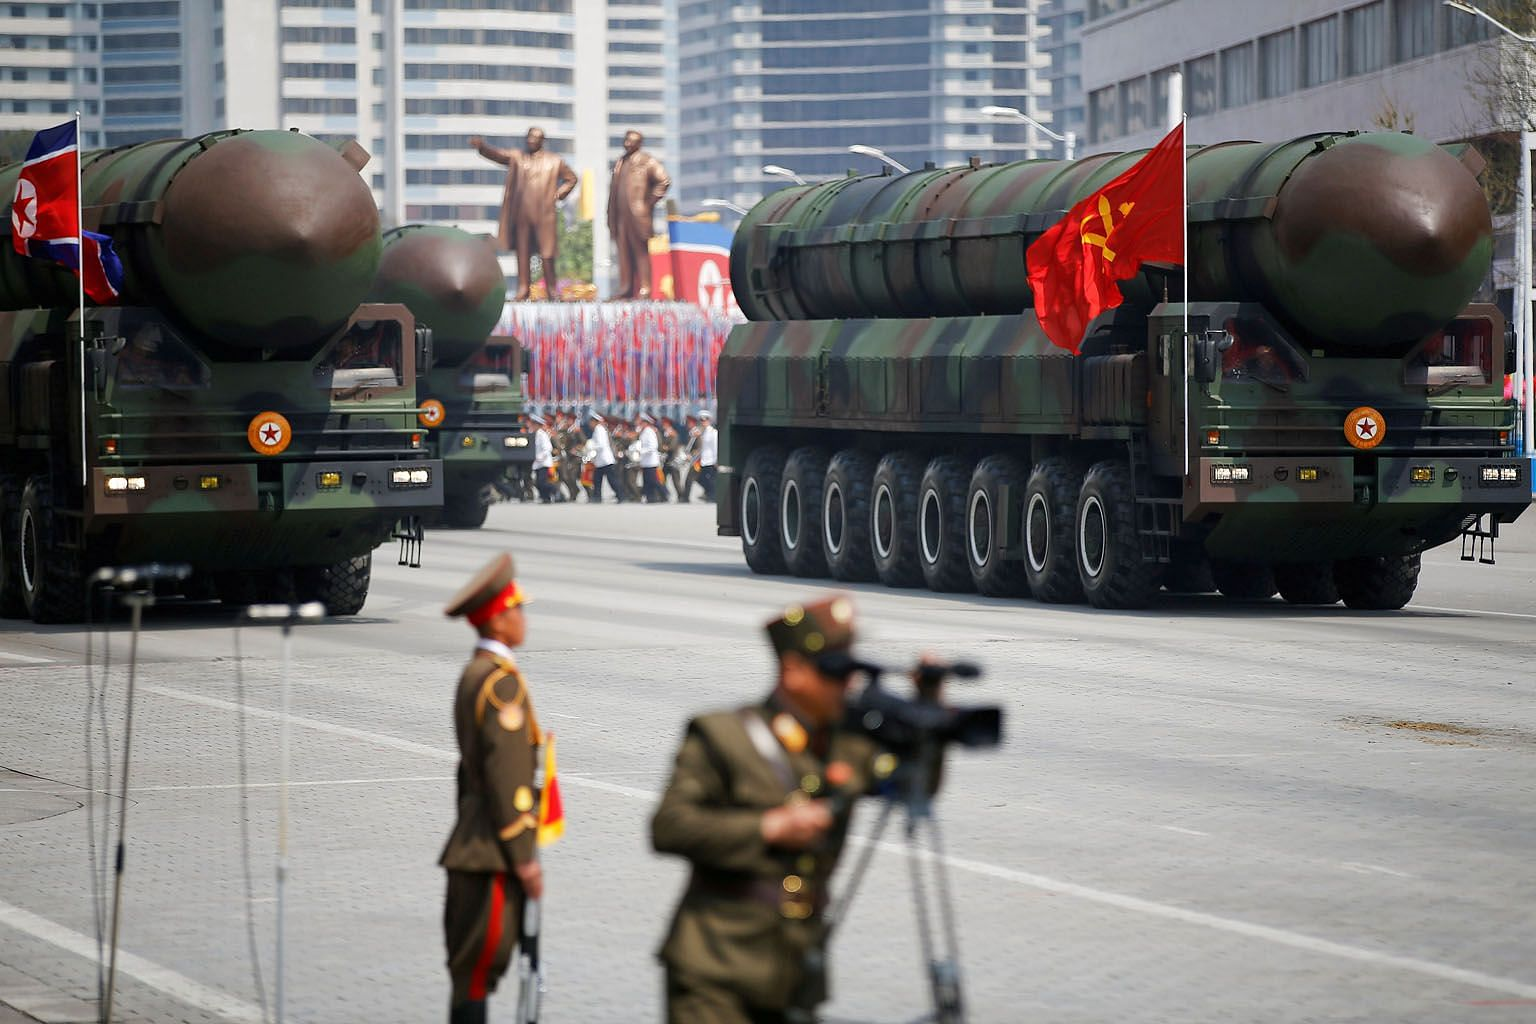 A parade featuring weapons including intercontinental ballistic missiles during a ceremony in 2017 marking the 105th birth anniversary of North Korea's founding father Kim Il Sung.